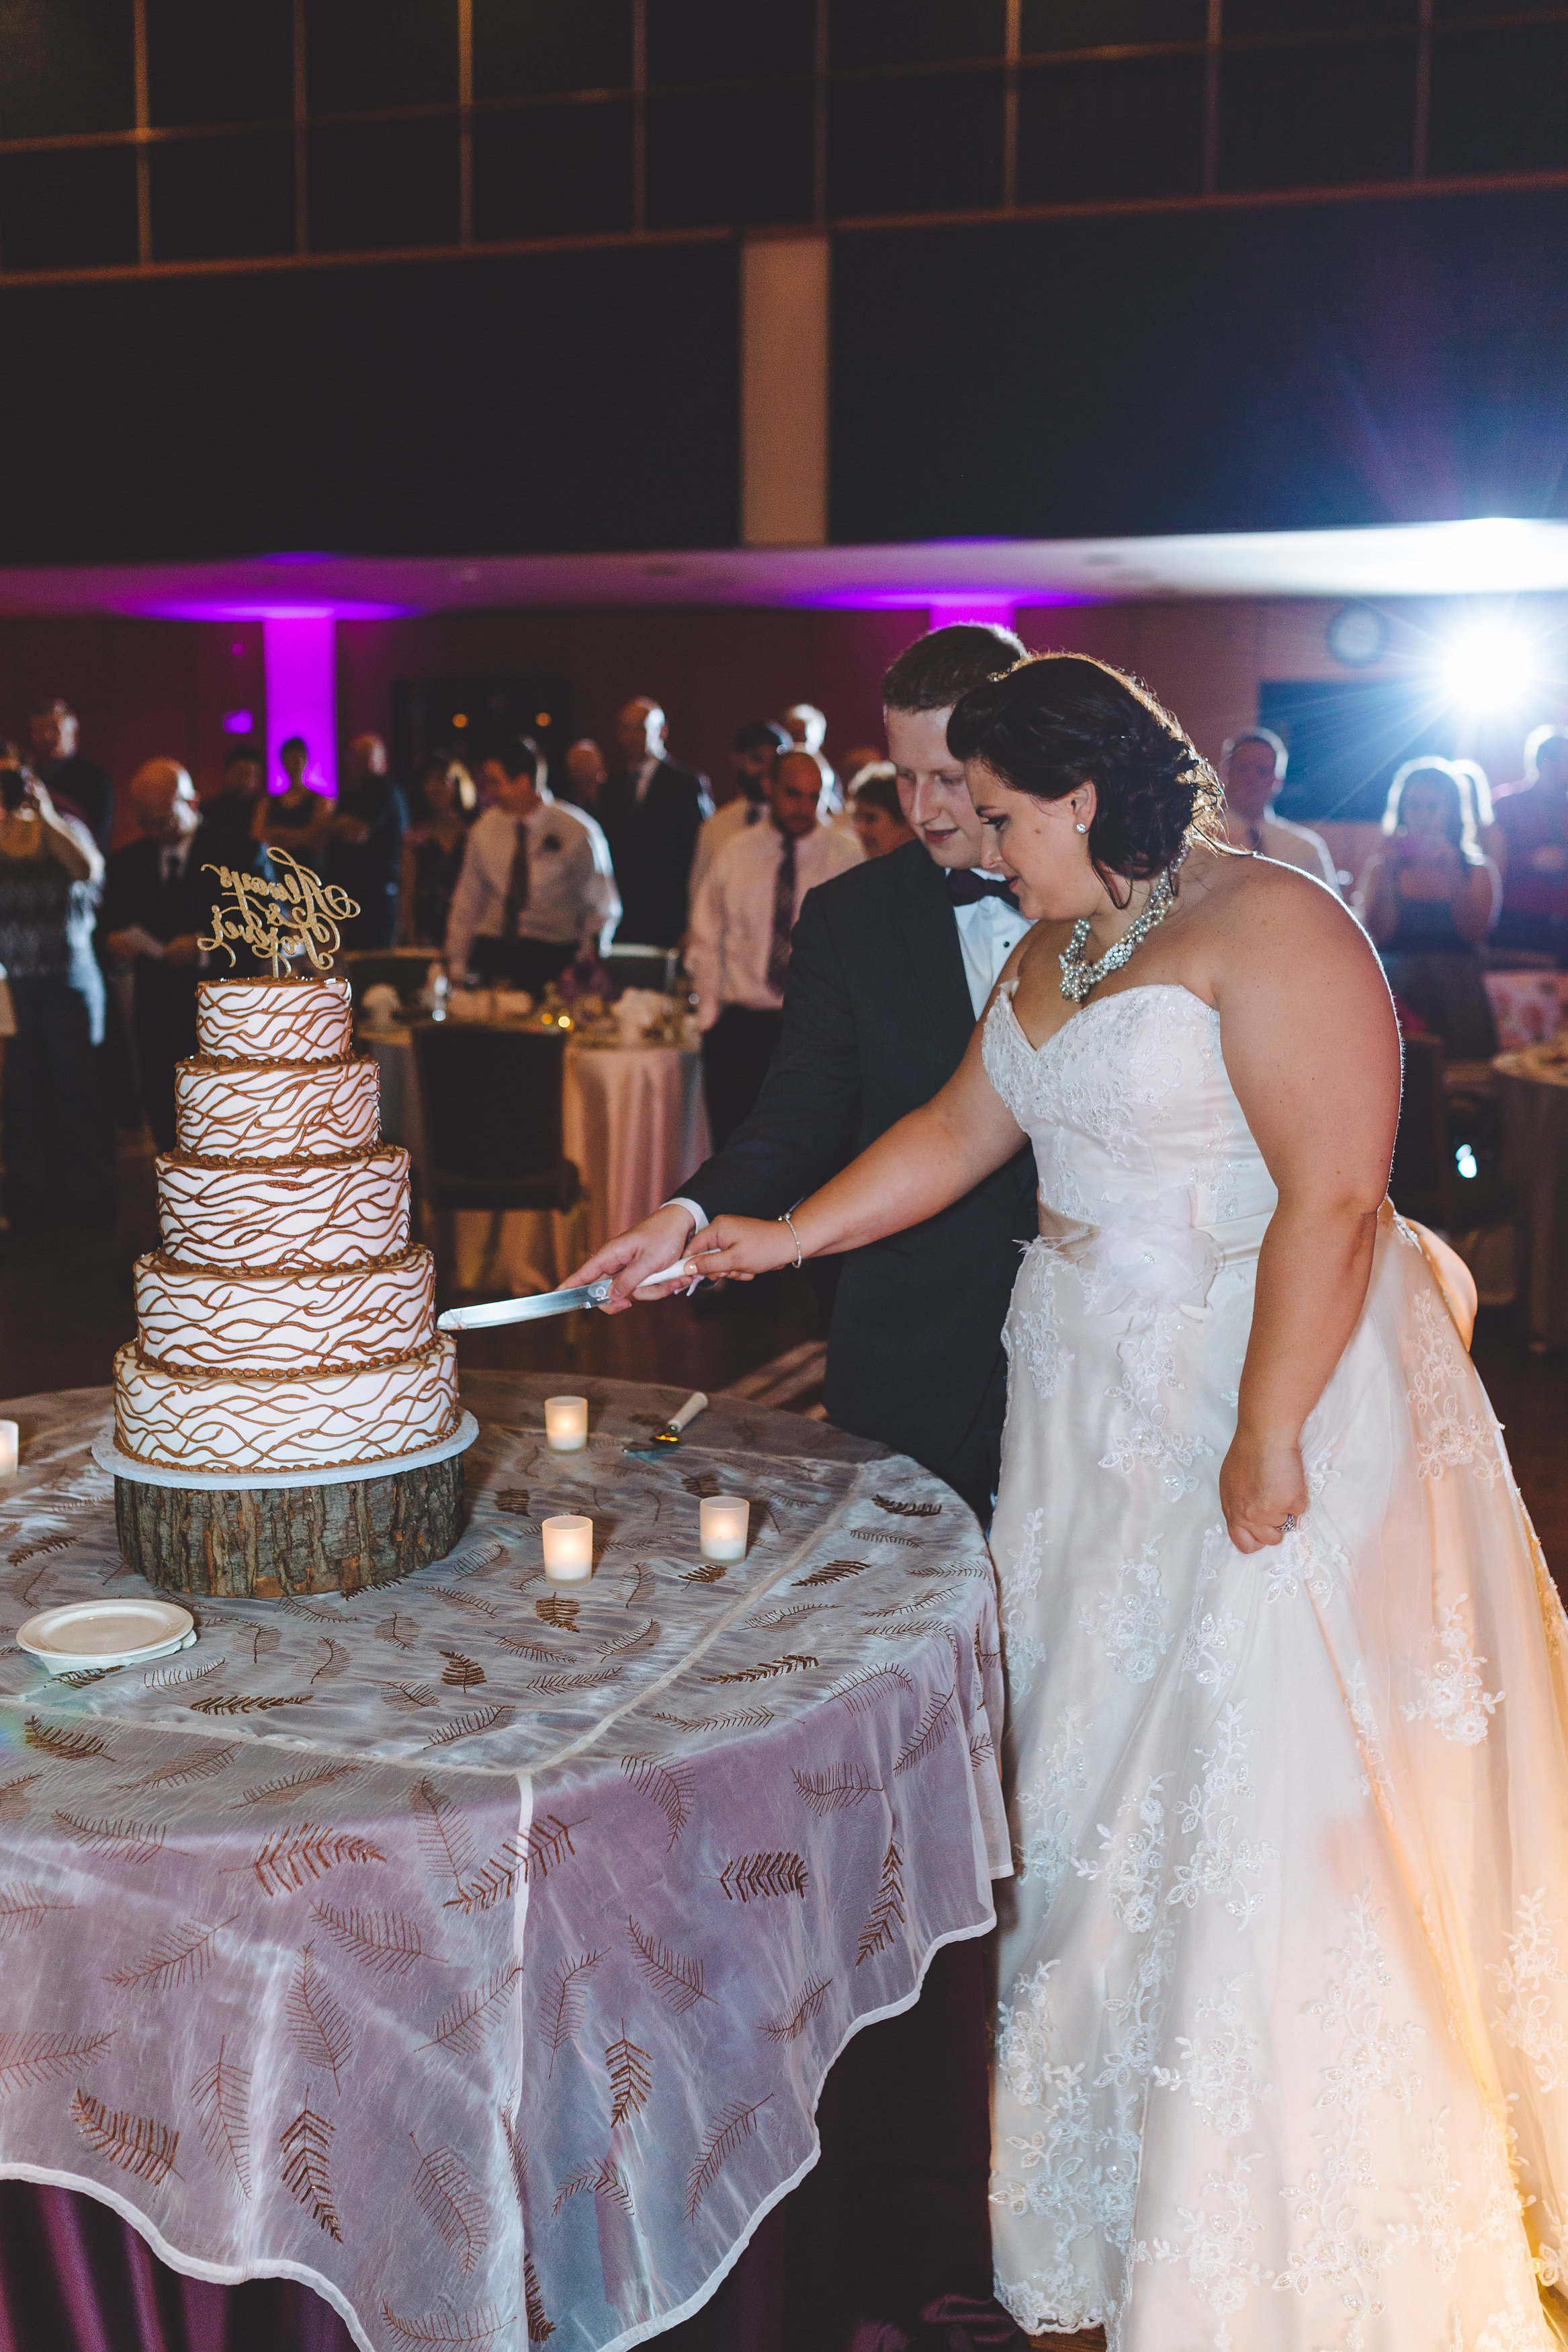 Bride_and_groom_cut_cake_Kent_Ohio